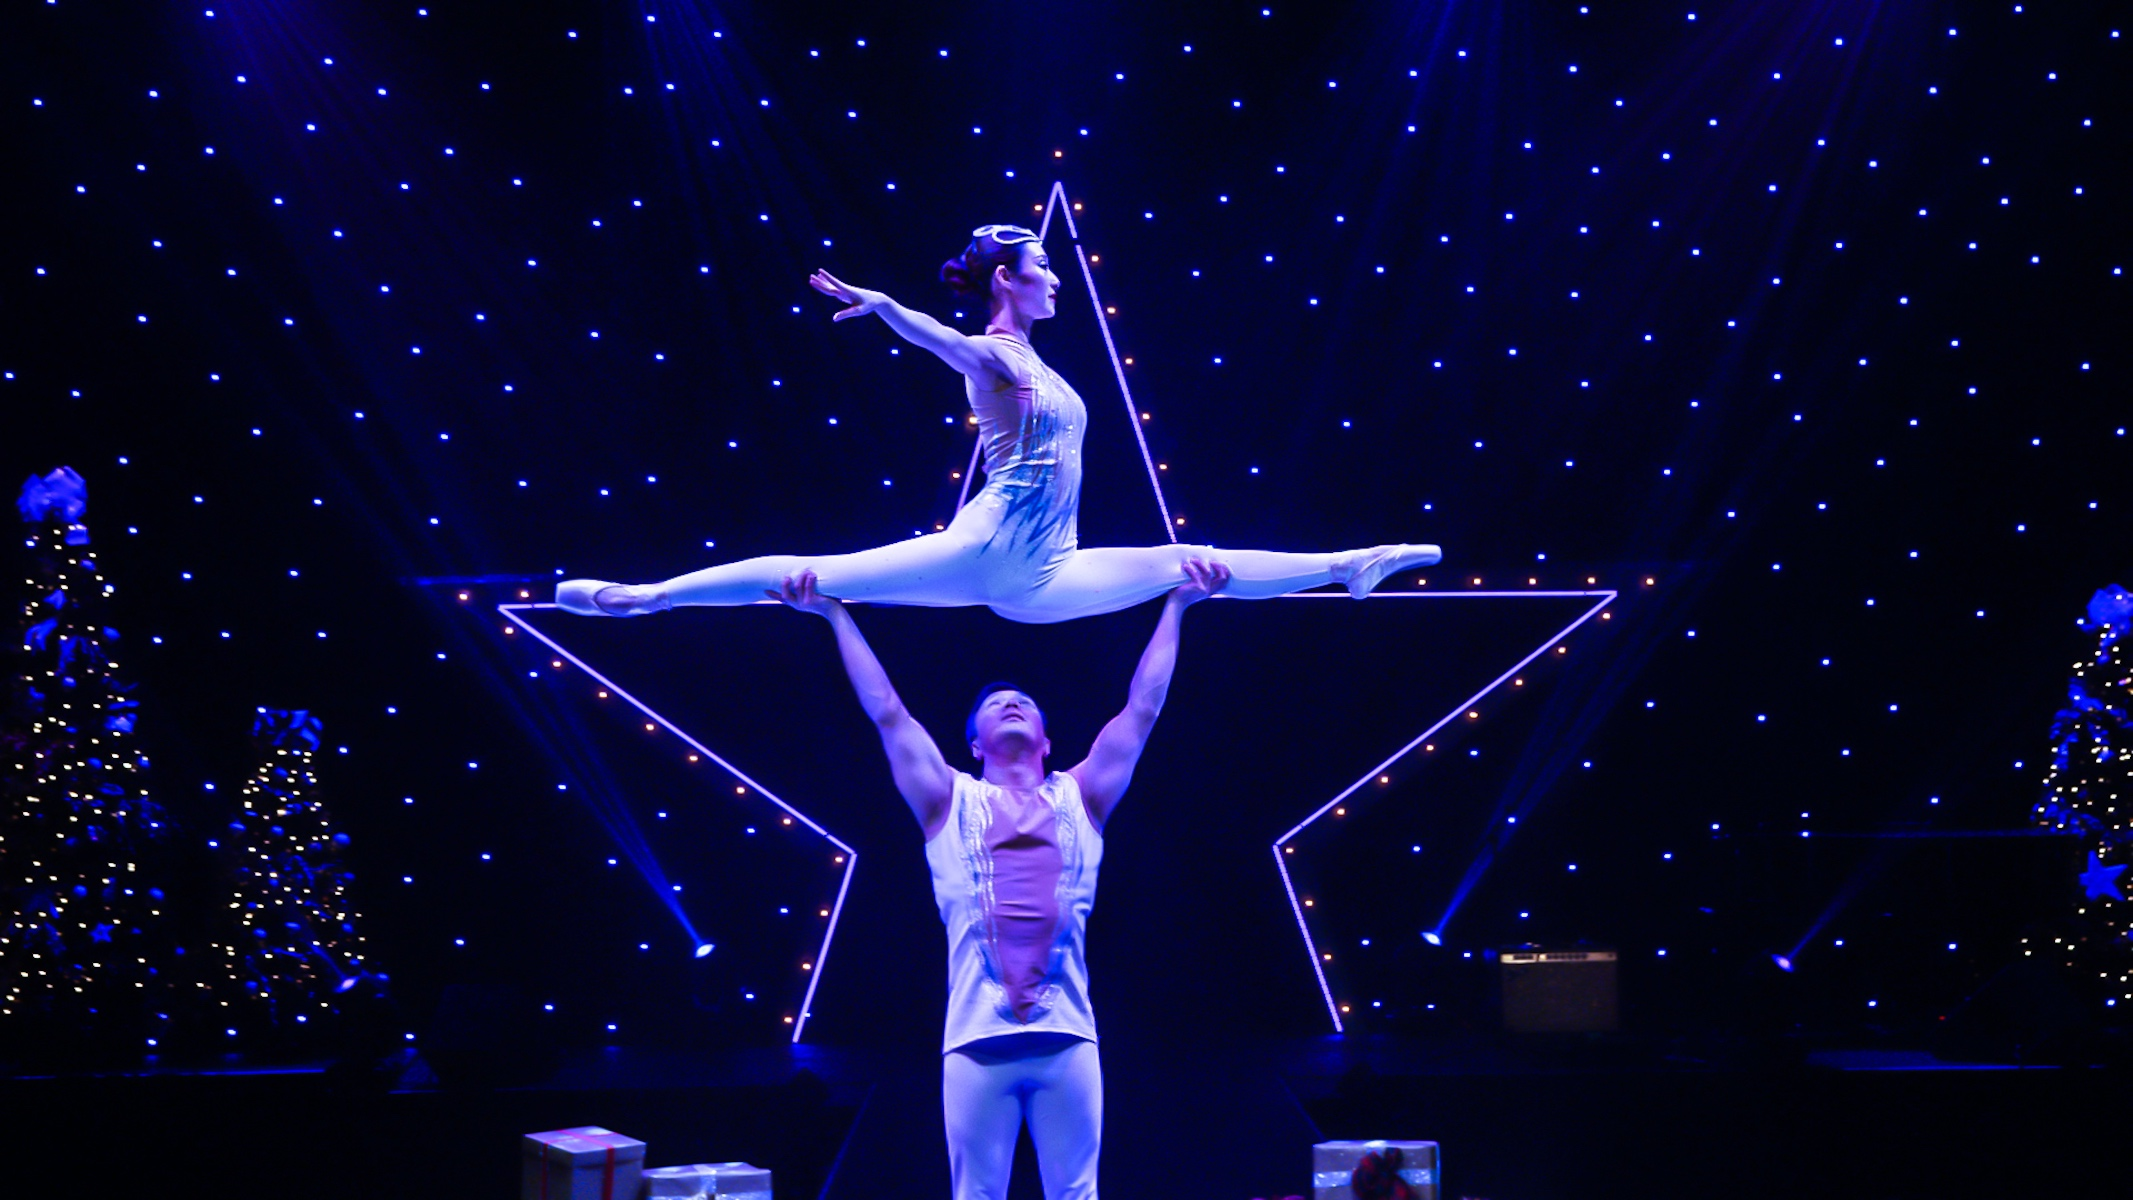 Gravity-Defying Acts and Tricks at A Magical Cirque Christmas